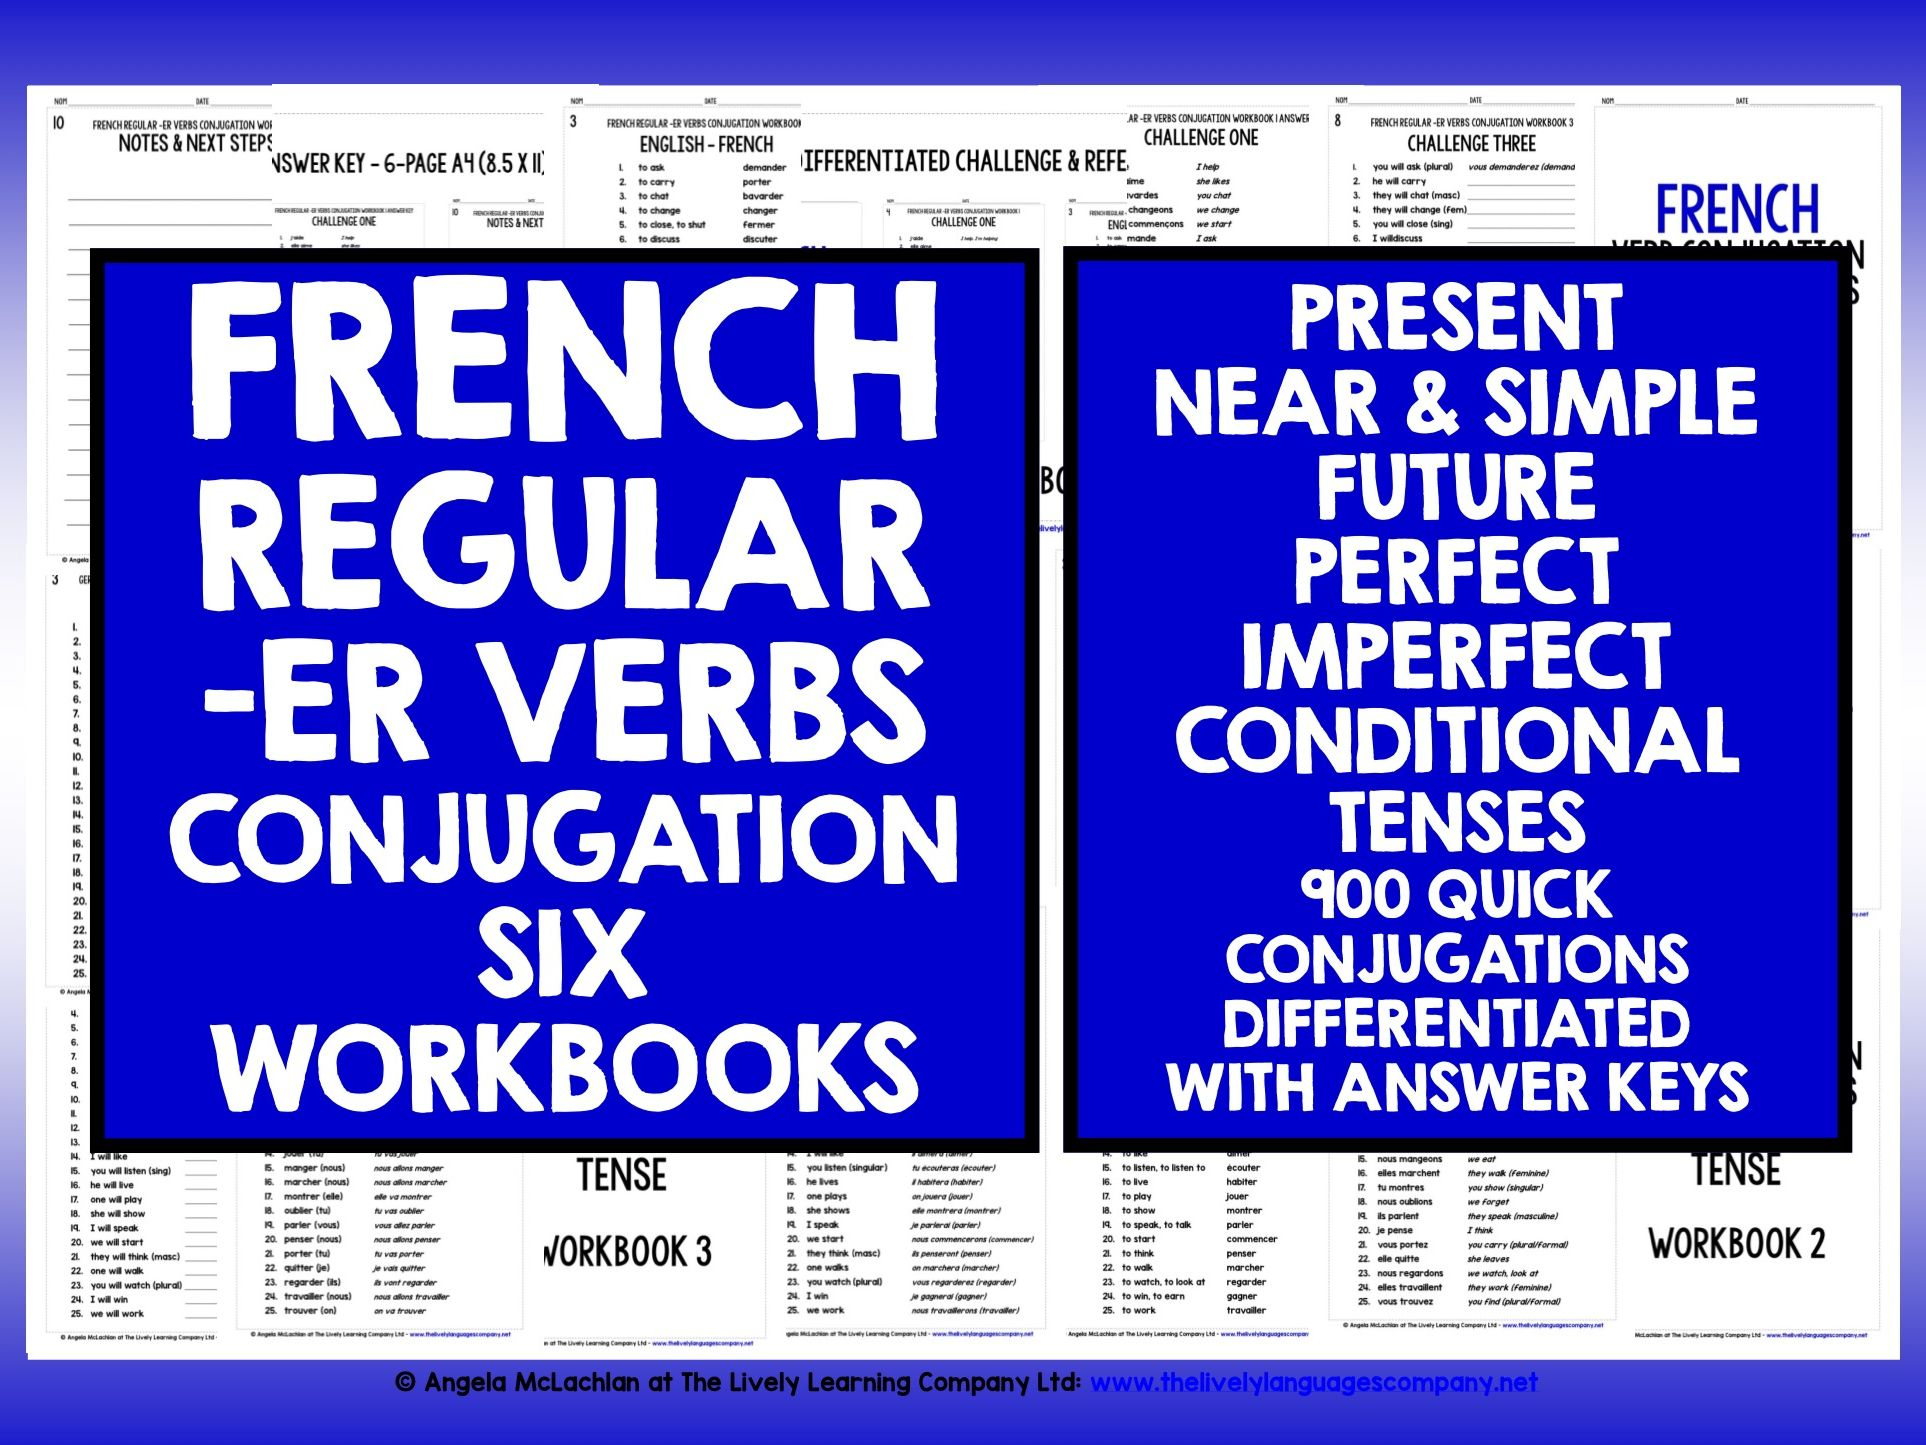 FRENCH -ER VERBS REVISION CONJUGATION